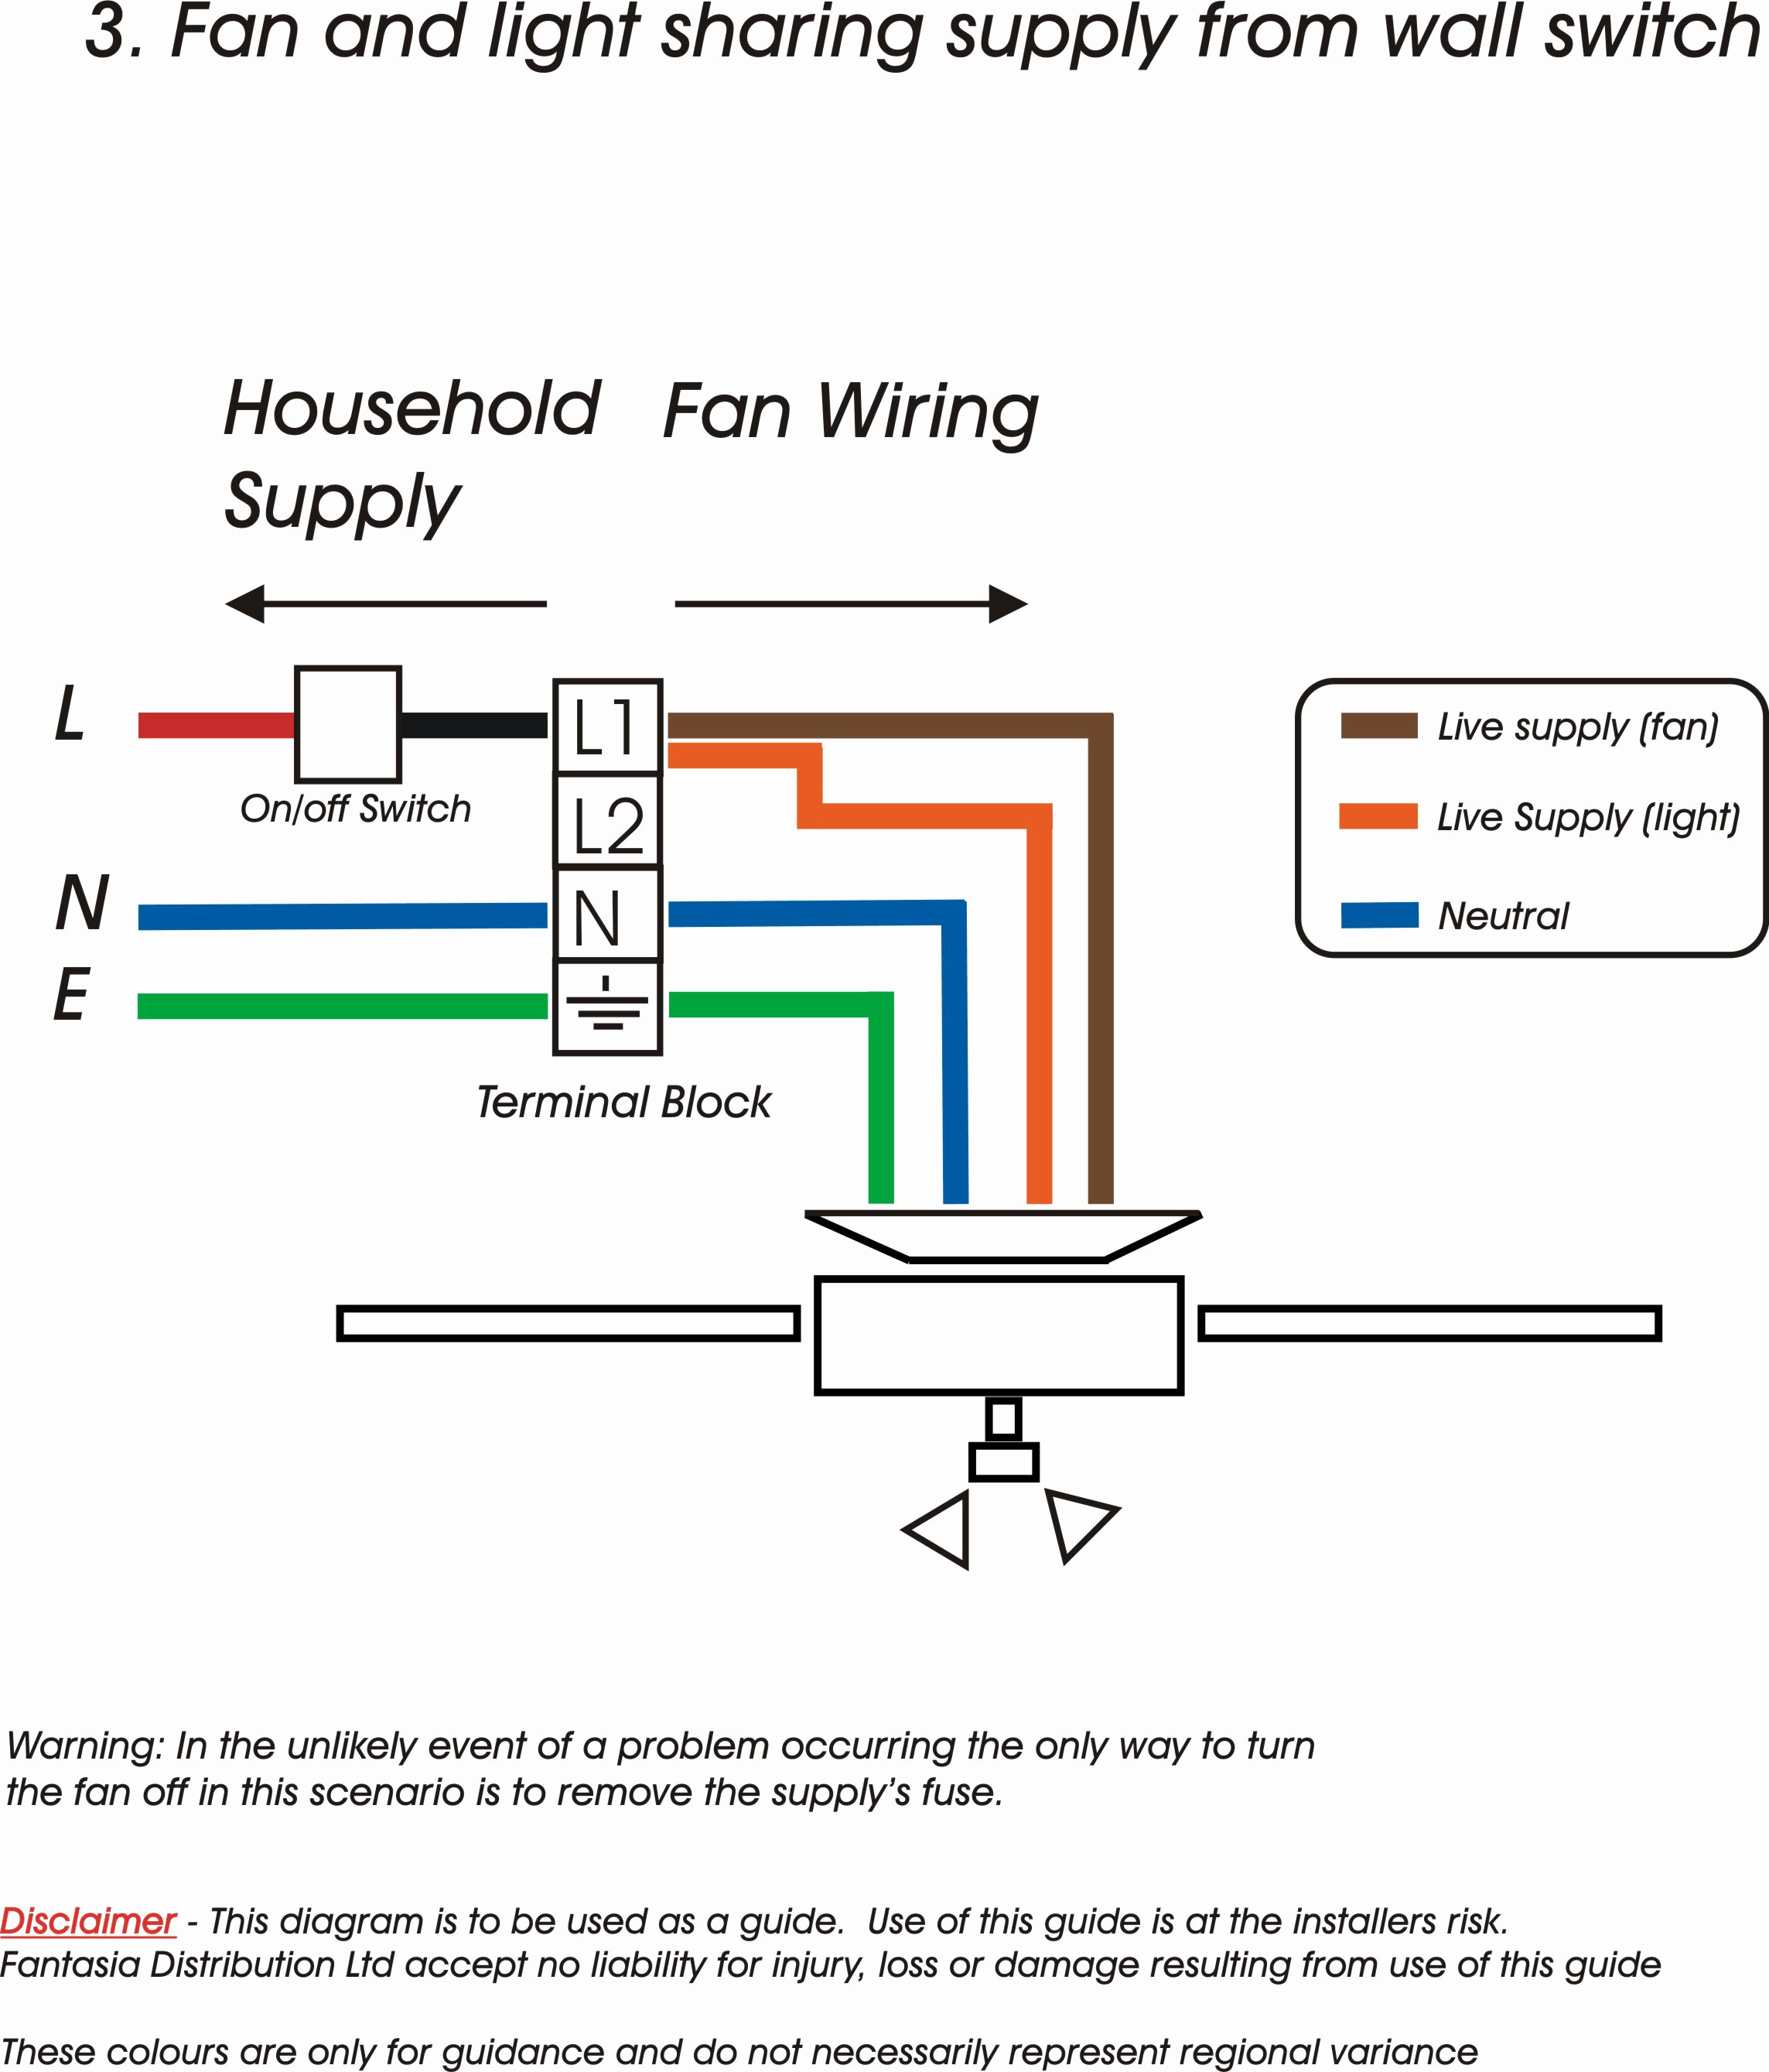 Universal Ceiling Fan Wiring Diagram on ceiling fan construction, ceiling light wiring diagram, ceiling fan lights, ceiling fan wiring guide, westinghouse fan switch 77286 diagram, 3 speed fan switch diagram, ceiling fan wiring colors, ceiling fan installation, ceiling fan plug, ceiling fan schematic, ceiling fan wiring help, ceiling fan specifications, ceiling fan speed switch, ceiling fan blades, ceiling fan remote programming, ceiling fan solenoid, ceiling fan capacitor, ceiling fan switches, fan blade direction diagram, electric fan parts diagram,